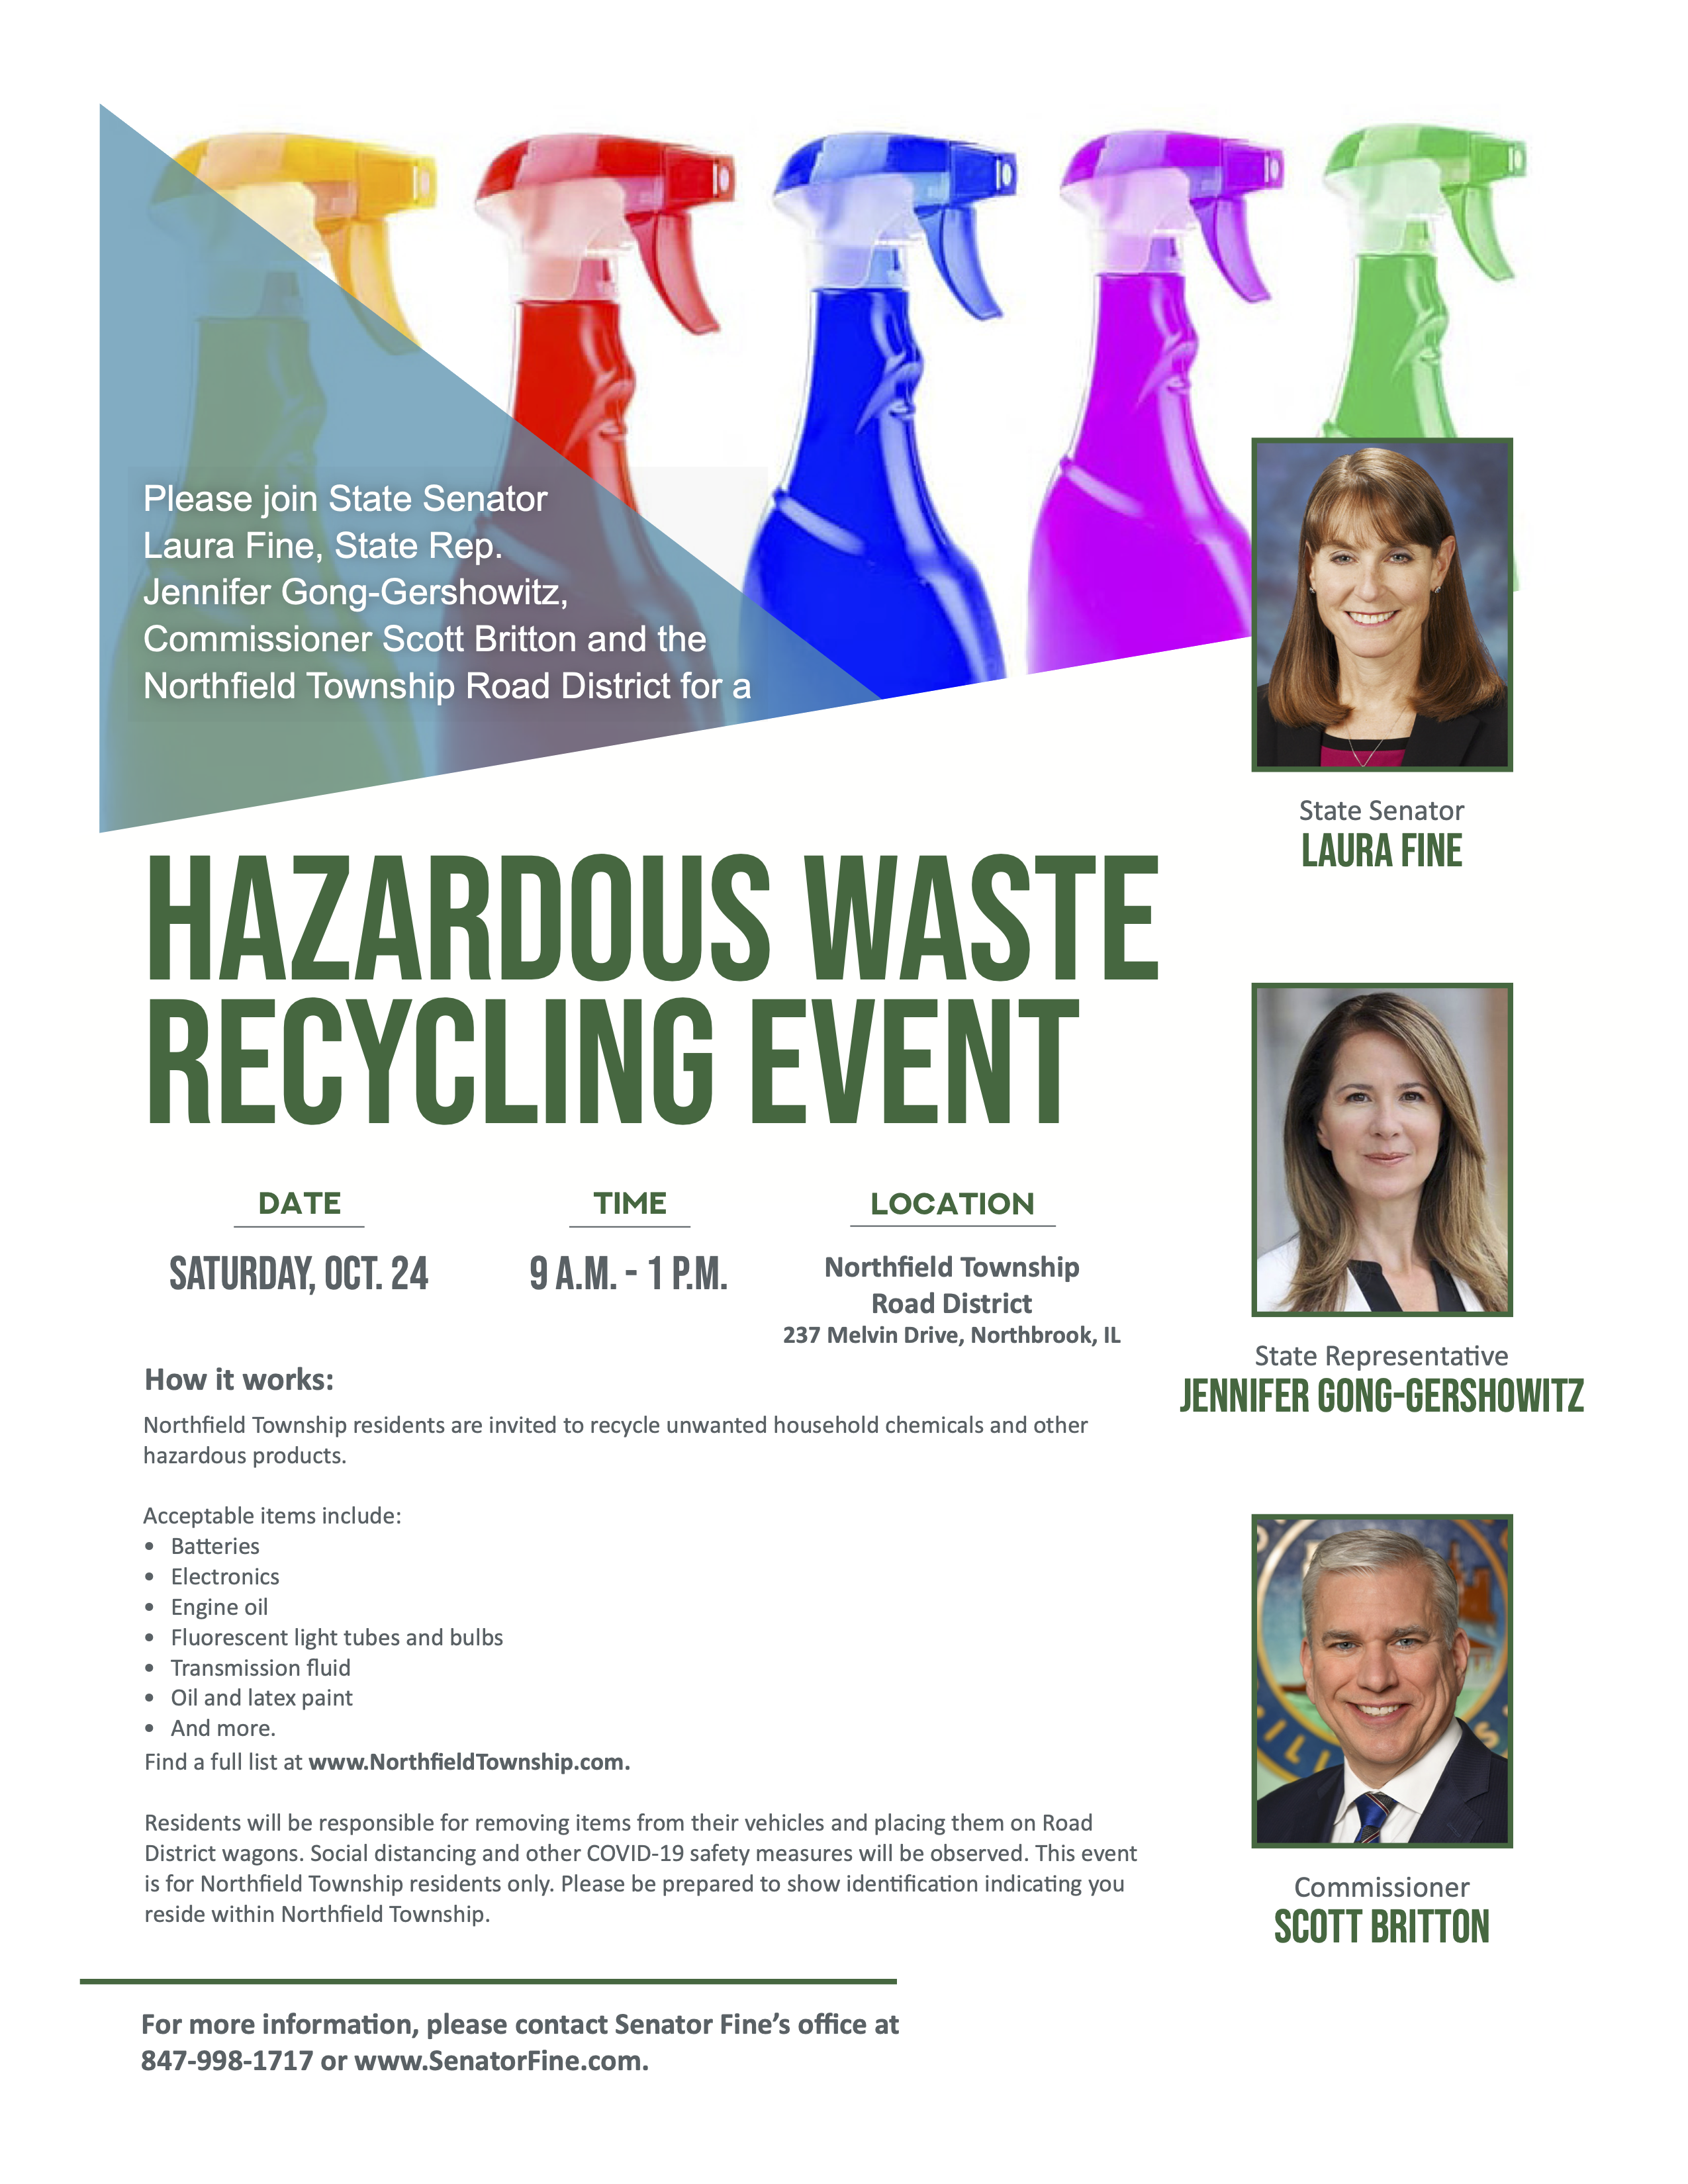 Fine Hazardous Waste Recycling Event Flyer